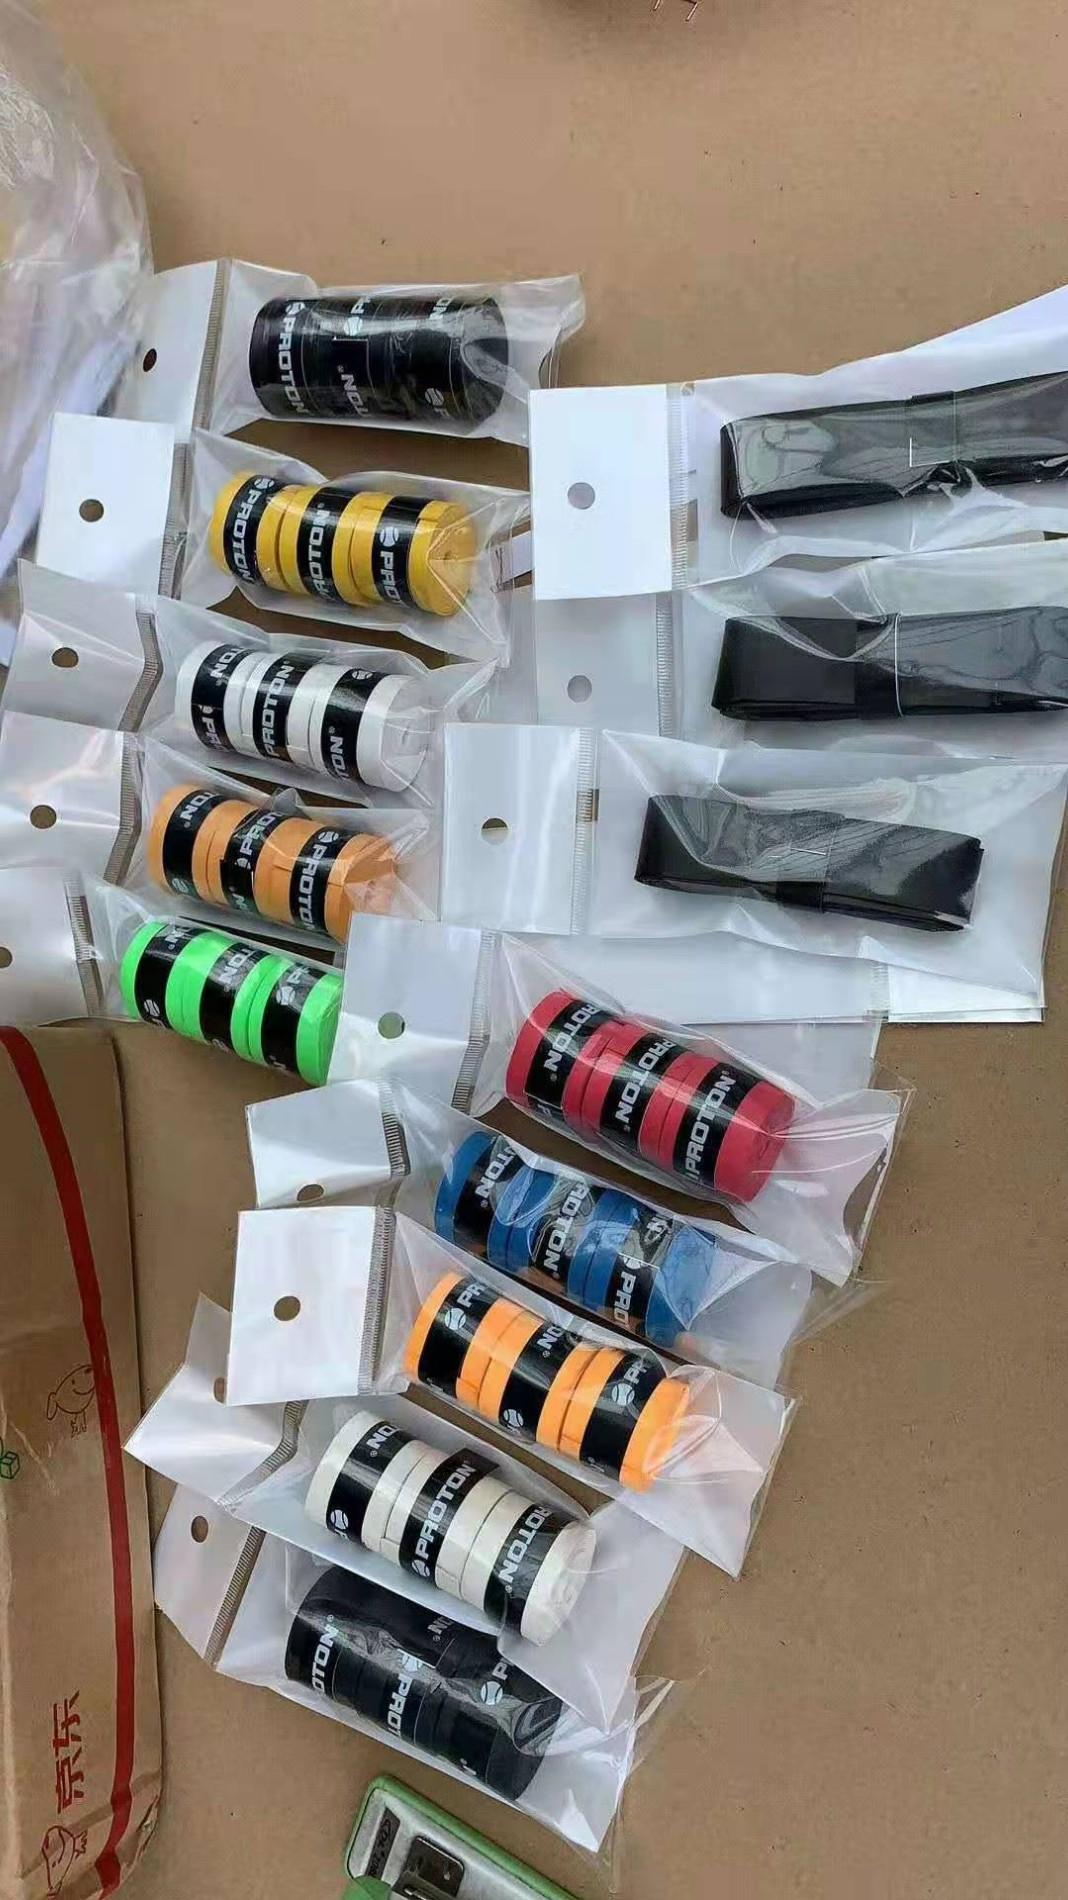 hot sales of overgrip without sticky Manufacturers, hot sales of overgrip without sticky Factory, Supply hot sales of overgrip without sticky